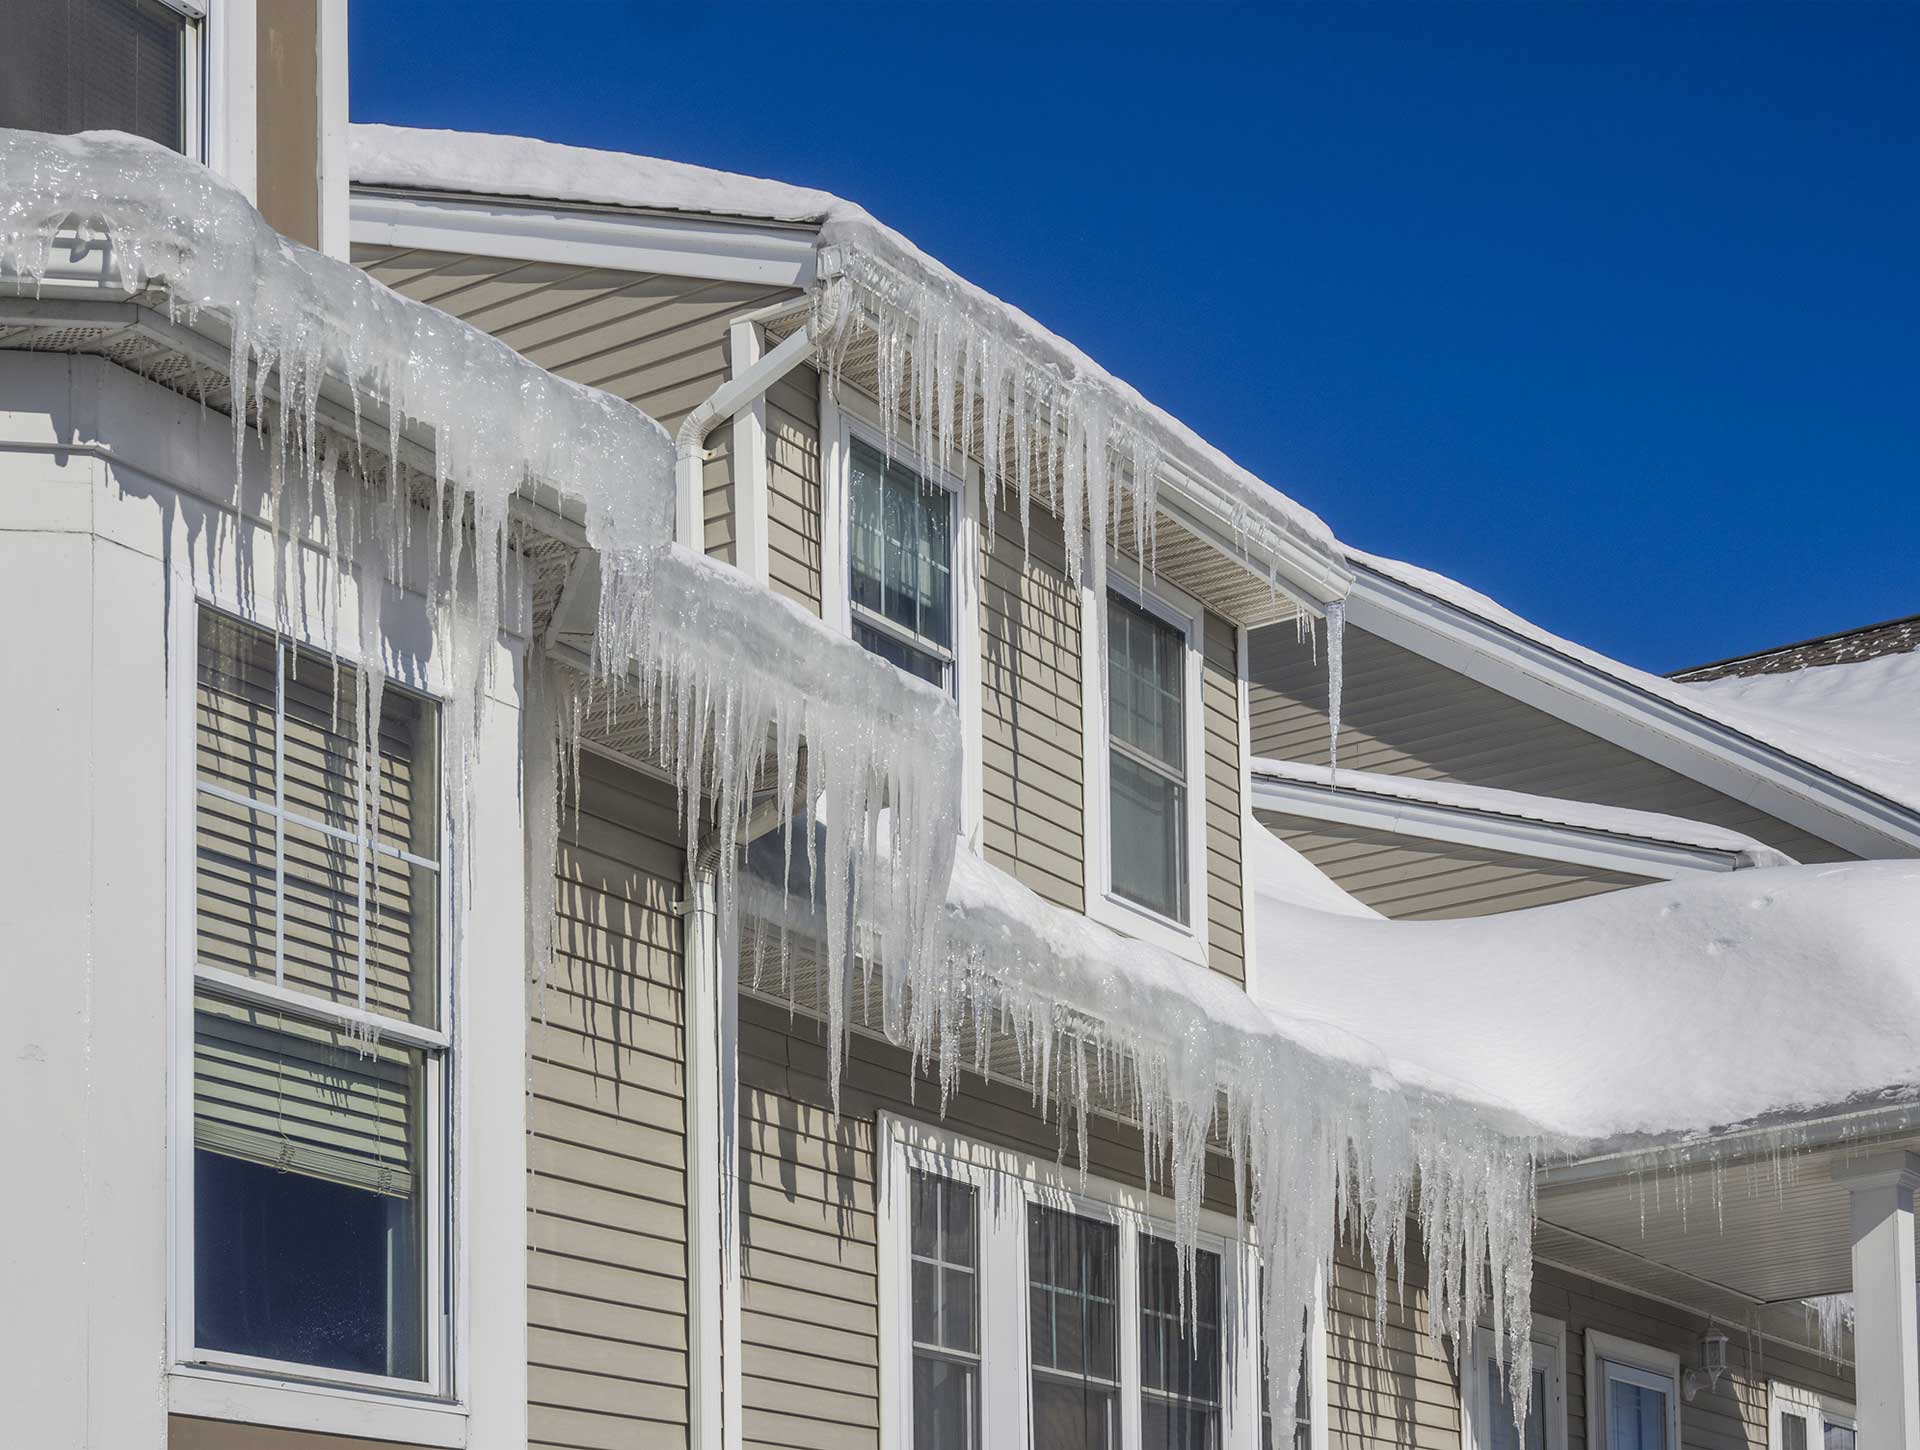 Tips for Winterizing Your Home's Exterior